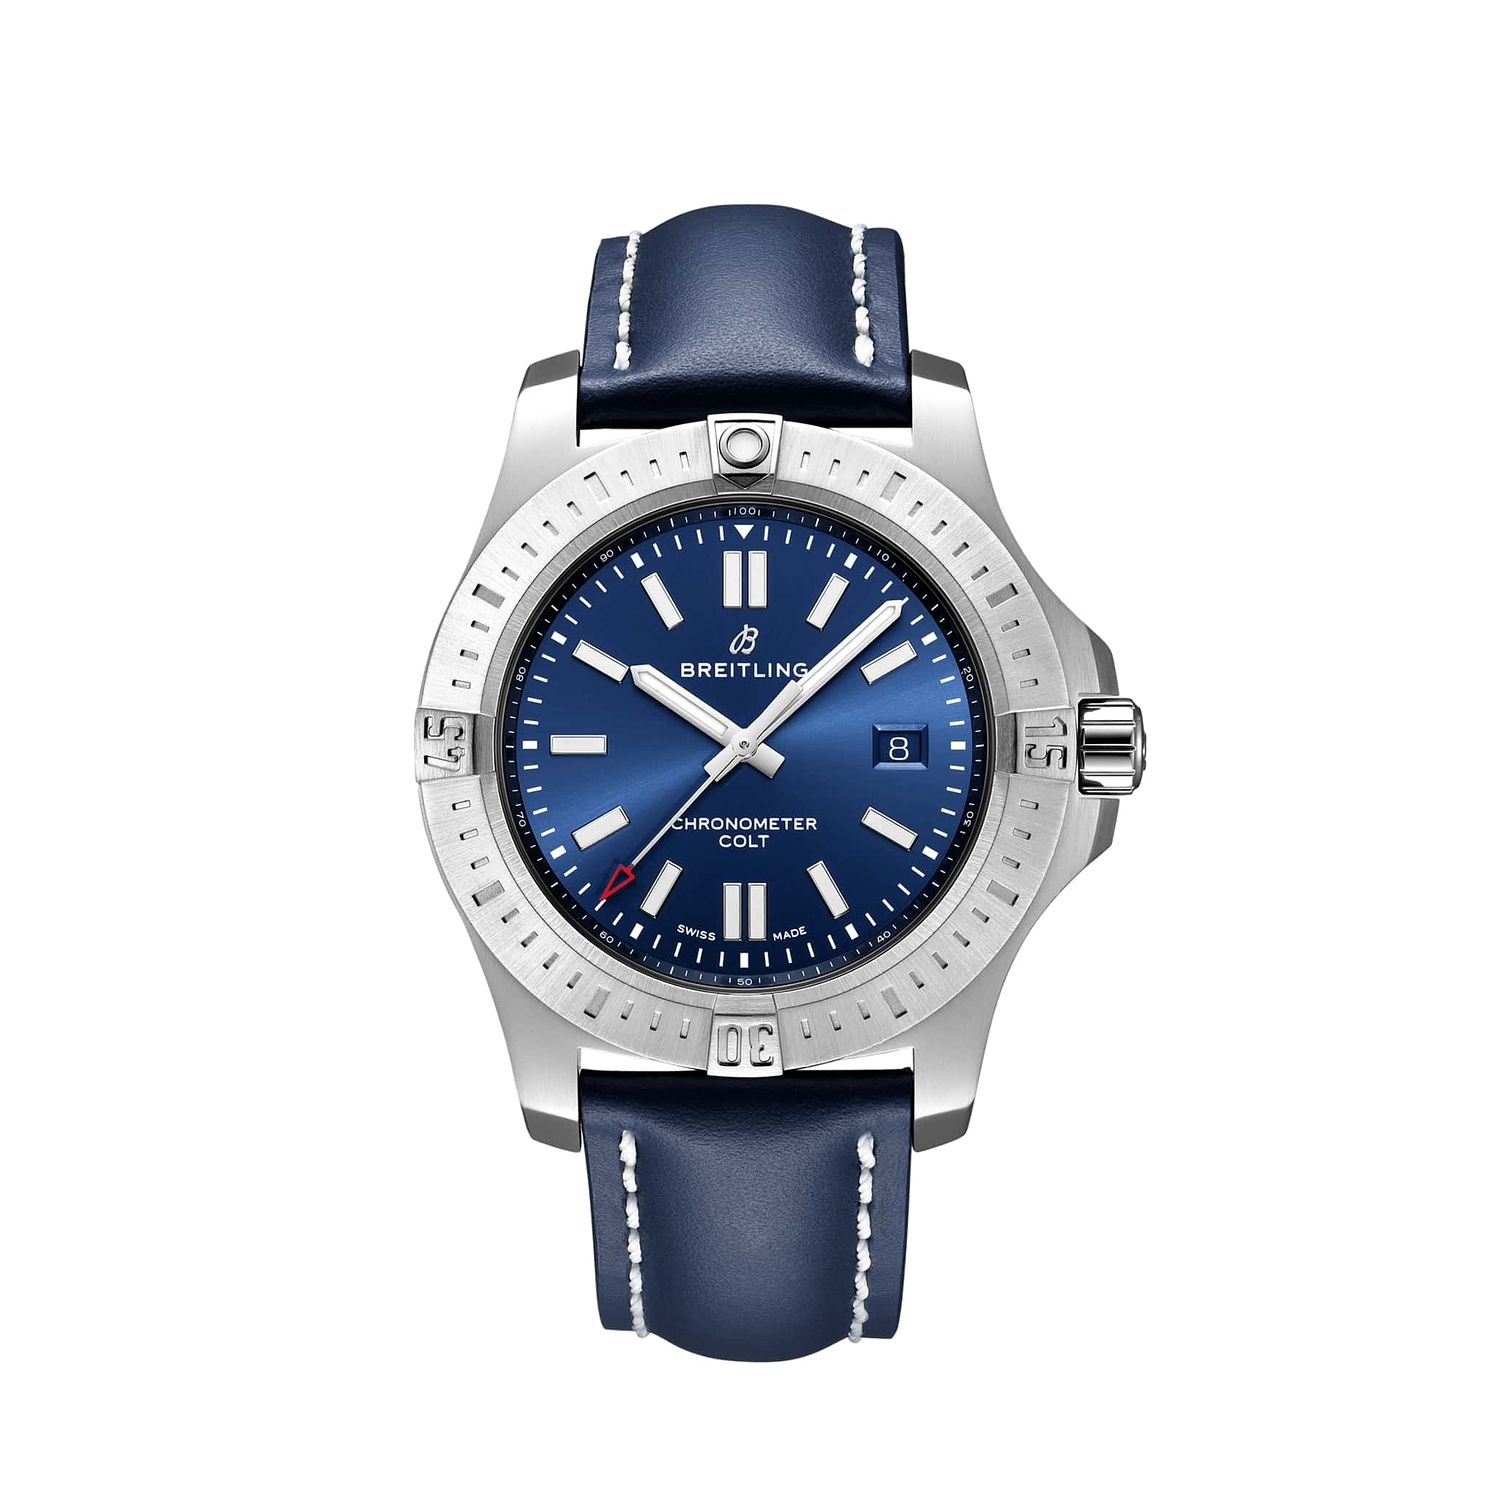 Breitling Men's Colt 44 Blue Leather Strap Watch - Product number 1128795